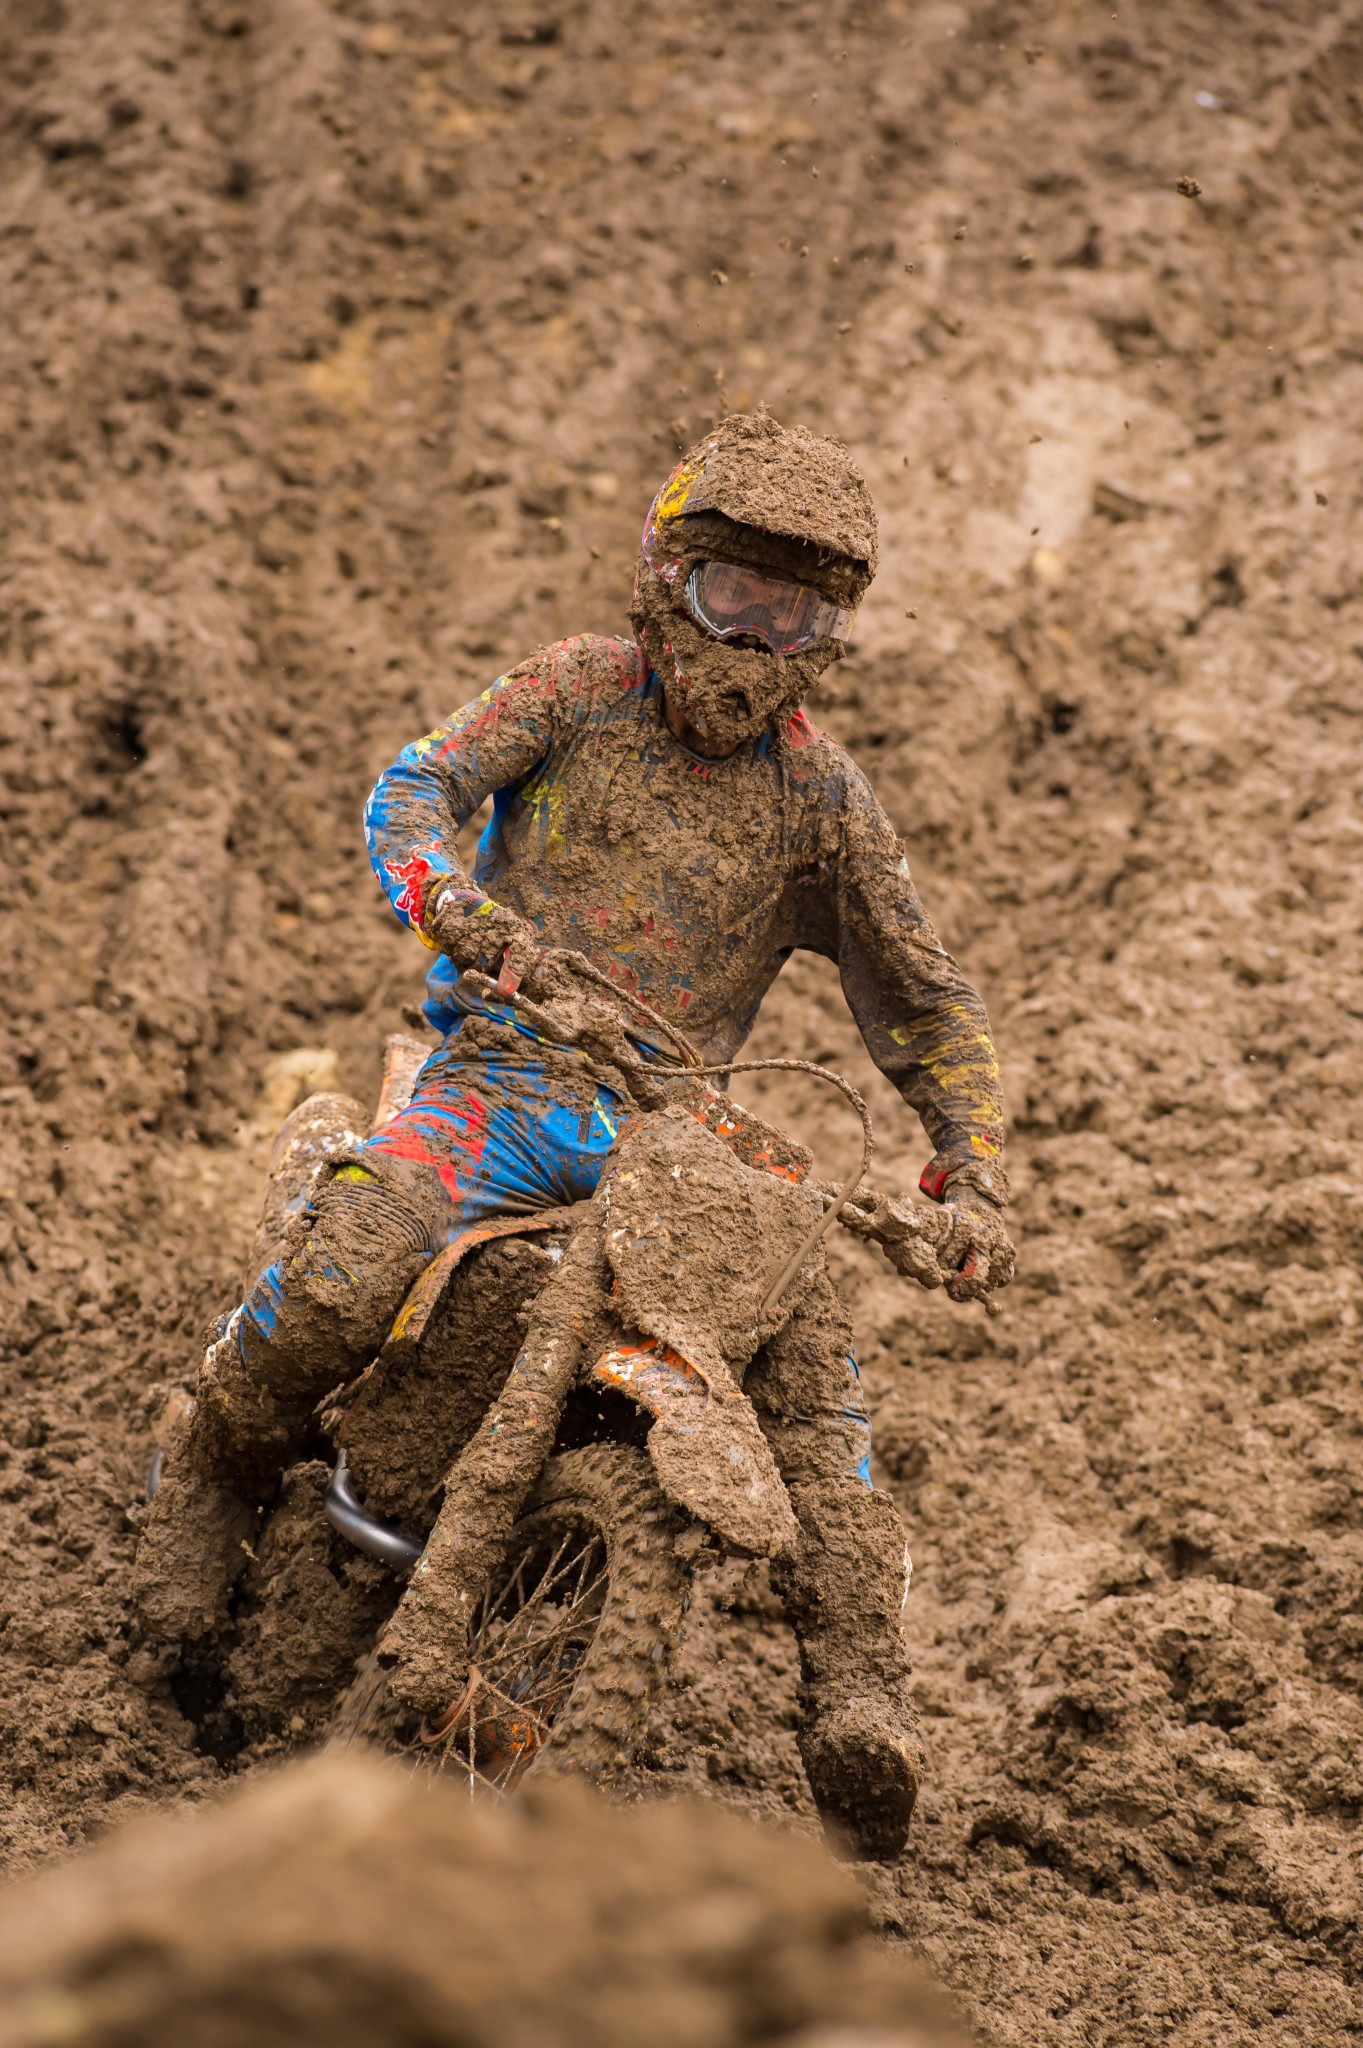 2014 Ama Motocross Rd 11 Indiana Derestricted